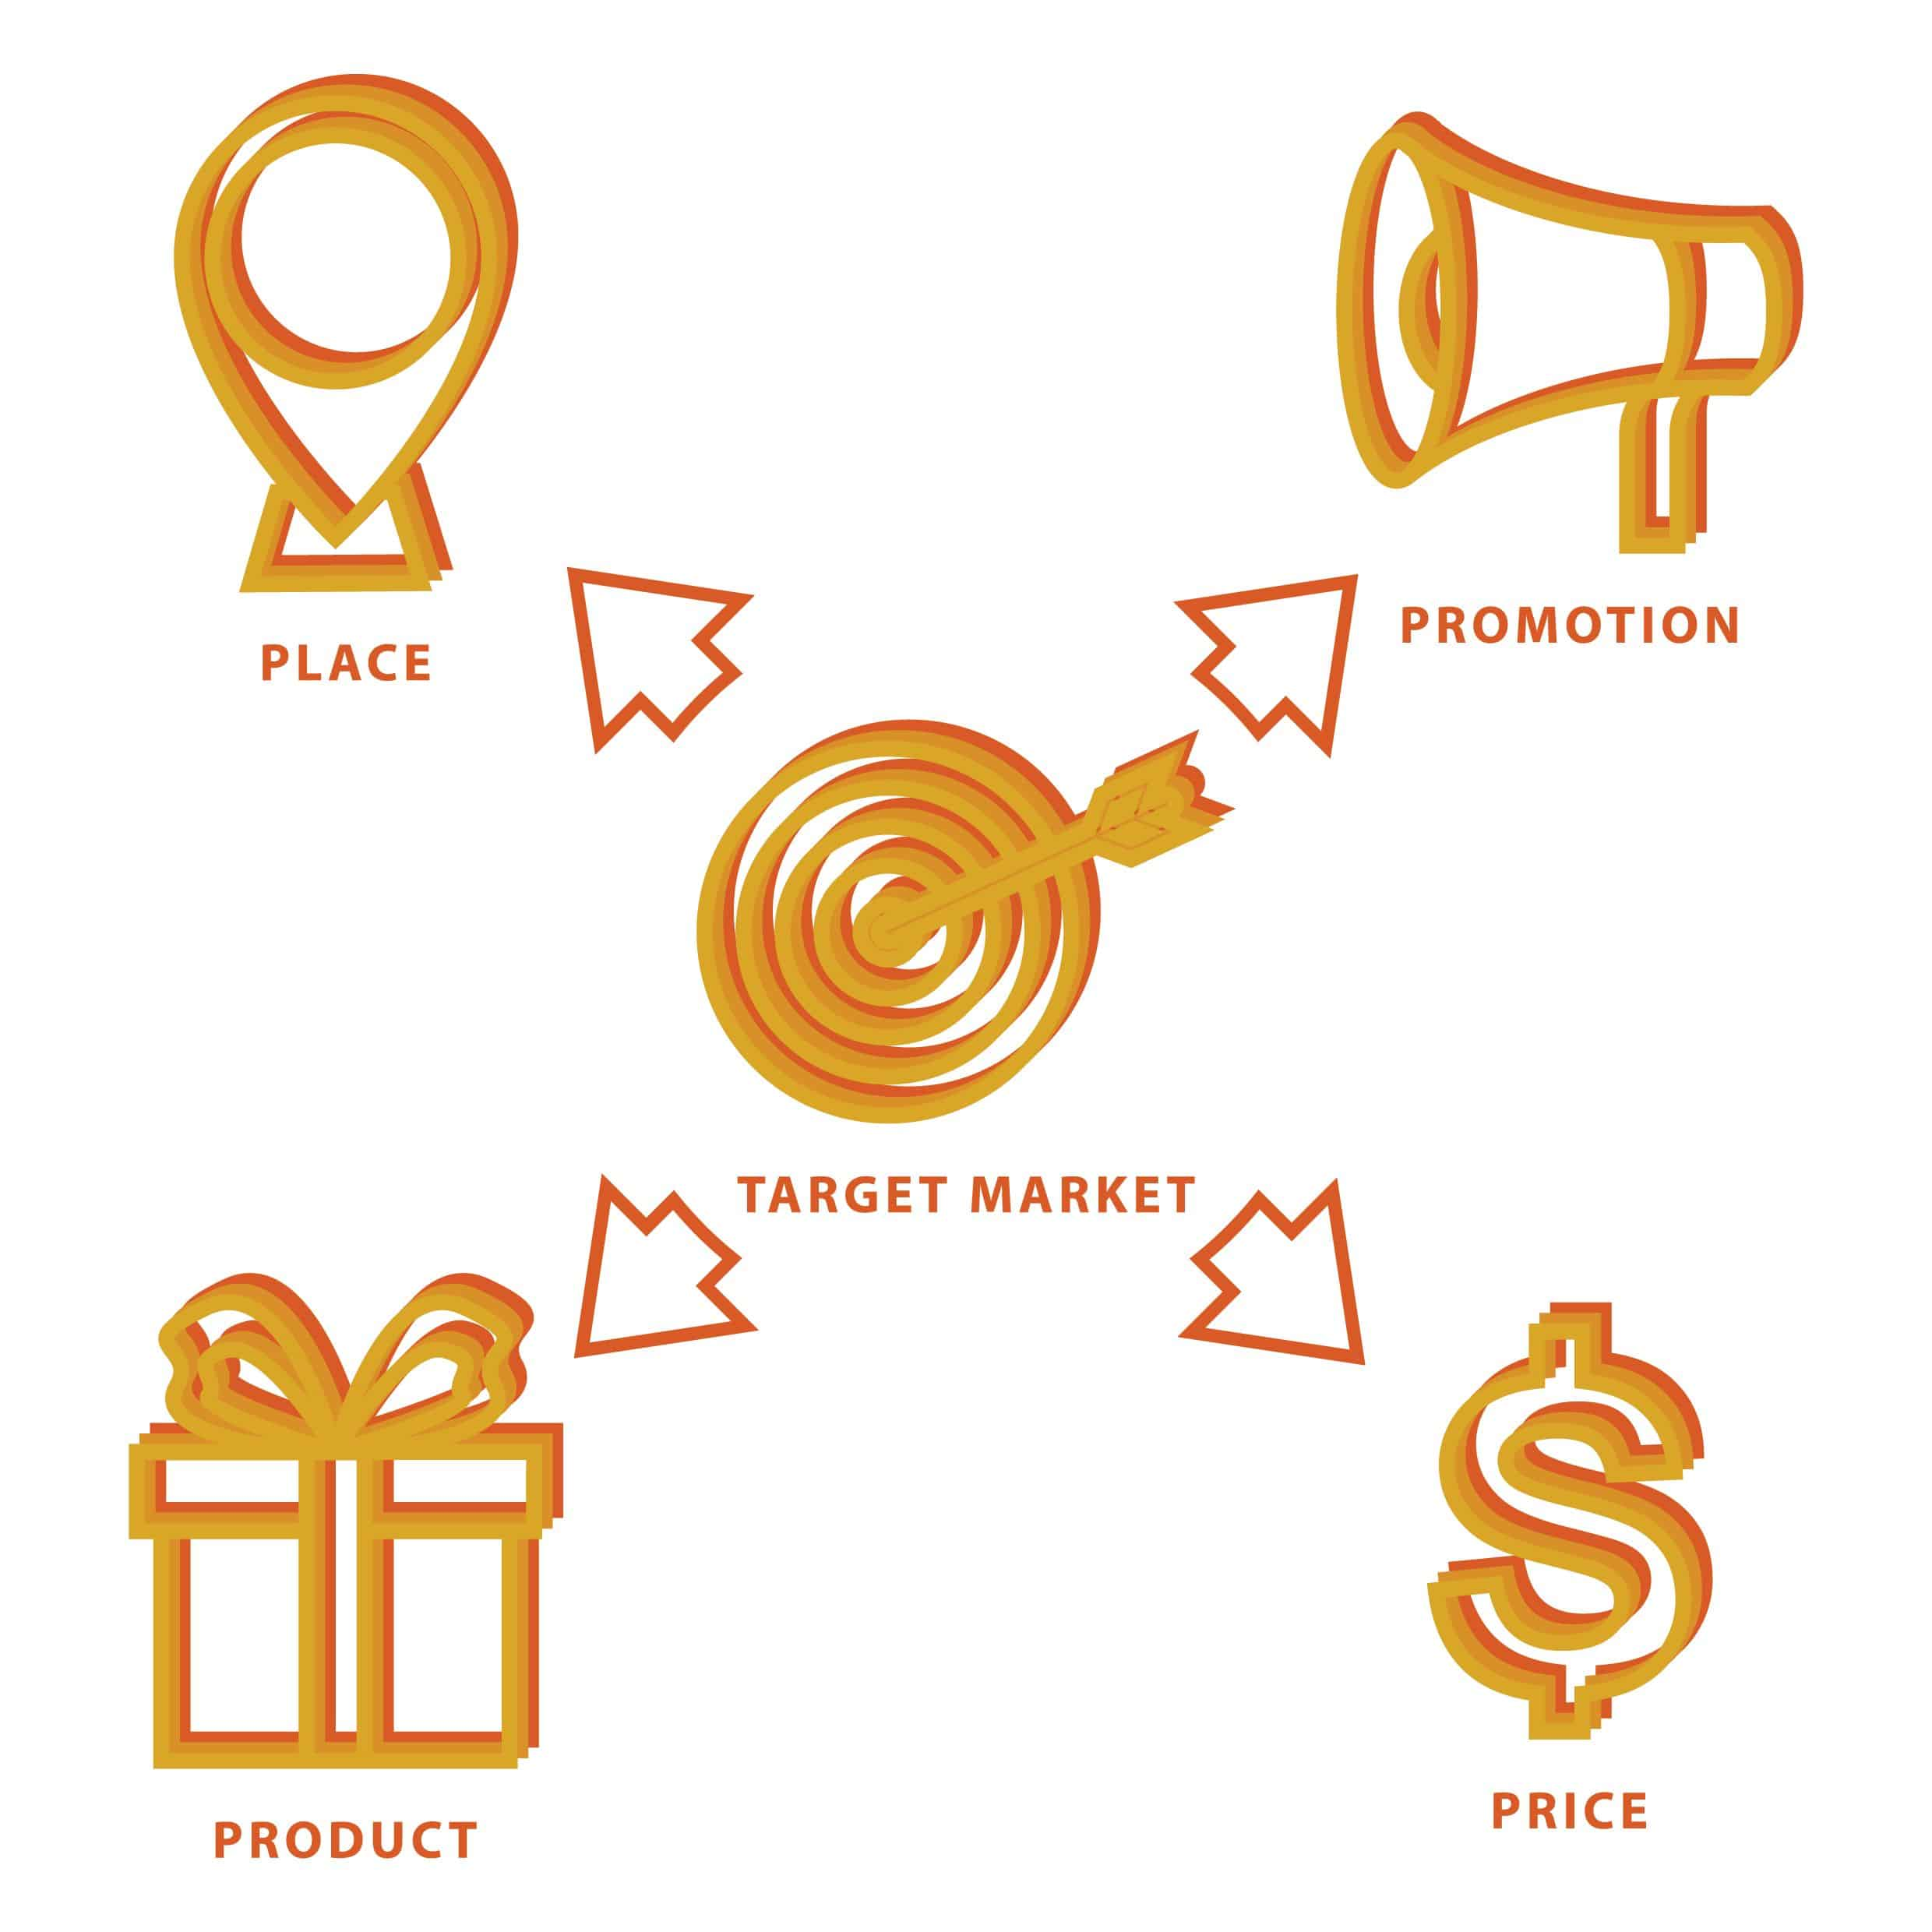 """product place price and promotion the 4 ps in marketing The 4 """"p's"""" of marketing (and an extra p) a critical component of marketing is messaging this entails creating messages that are memorable this article is about the main p's of marketing  the four ps are: product place promotion price these help you think about and execute the marketing mix this framework is great to use."""